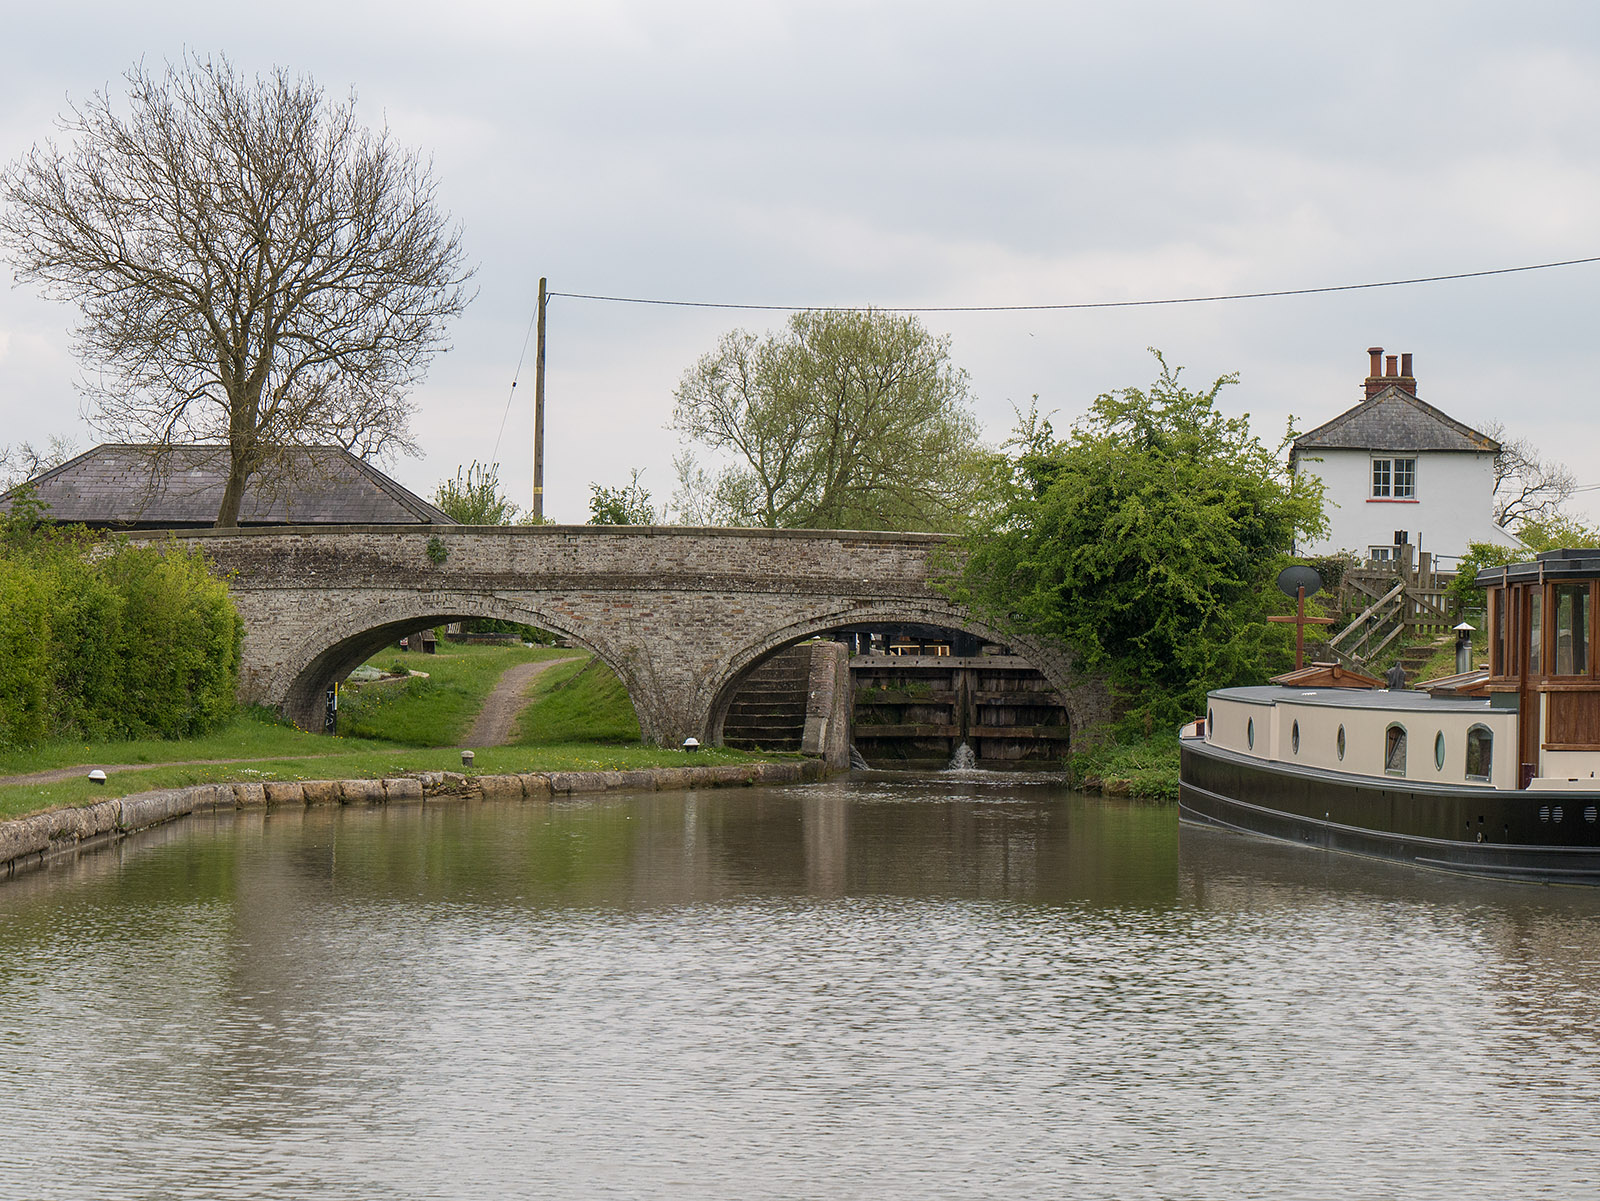 Bridge 104 and Stoke Hammond lock